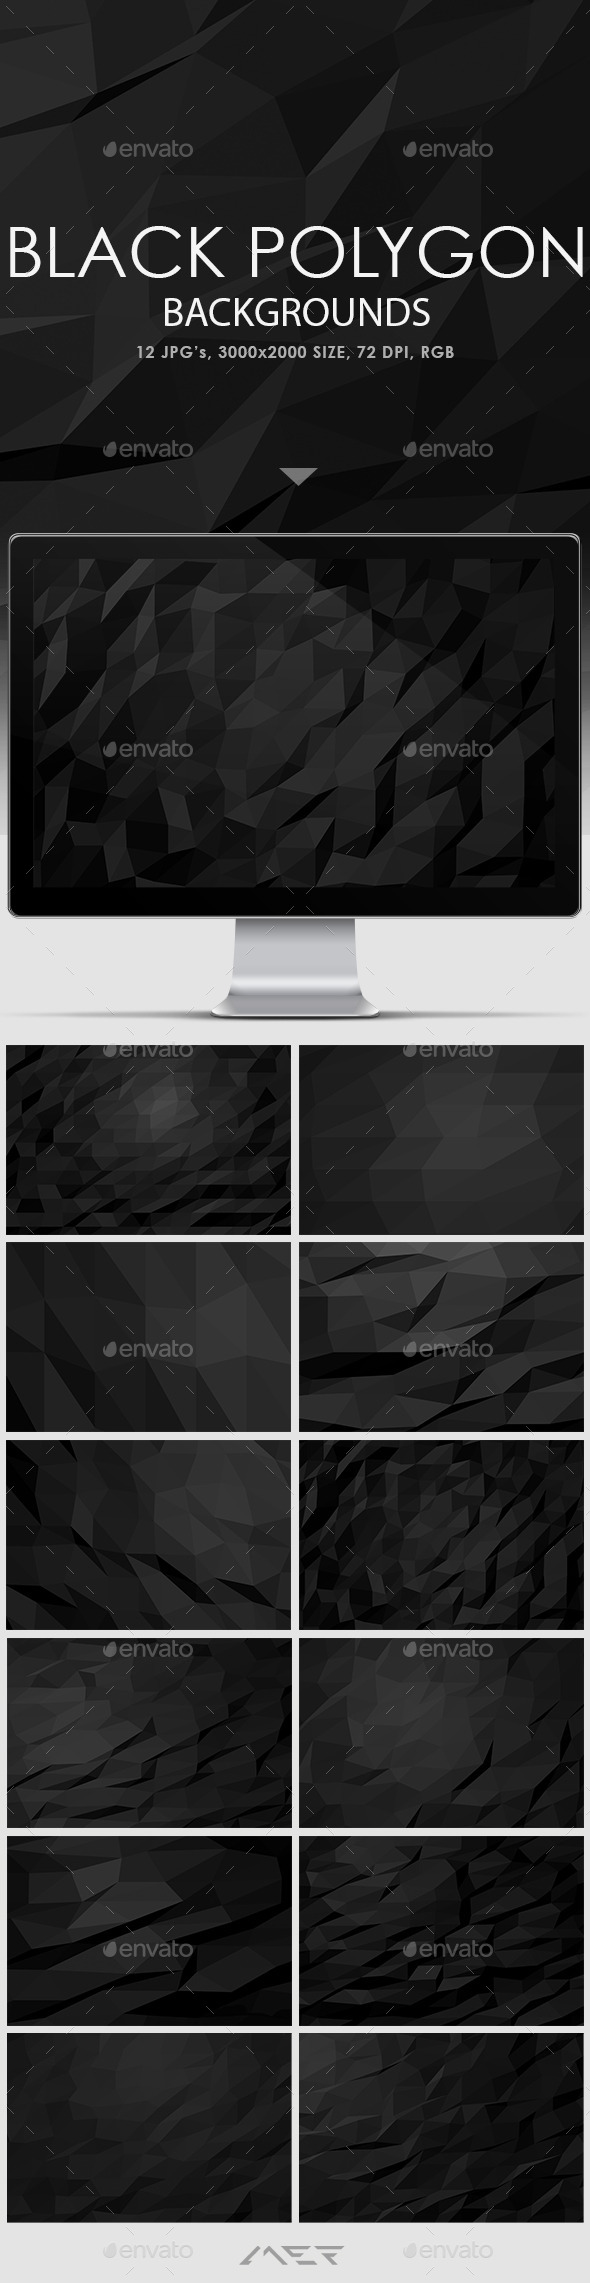 Black Polygon Backgrounds - Abstract Backgrounds